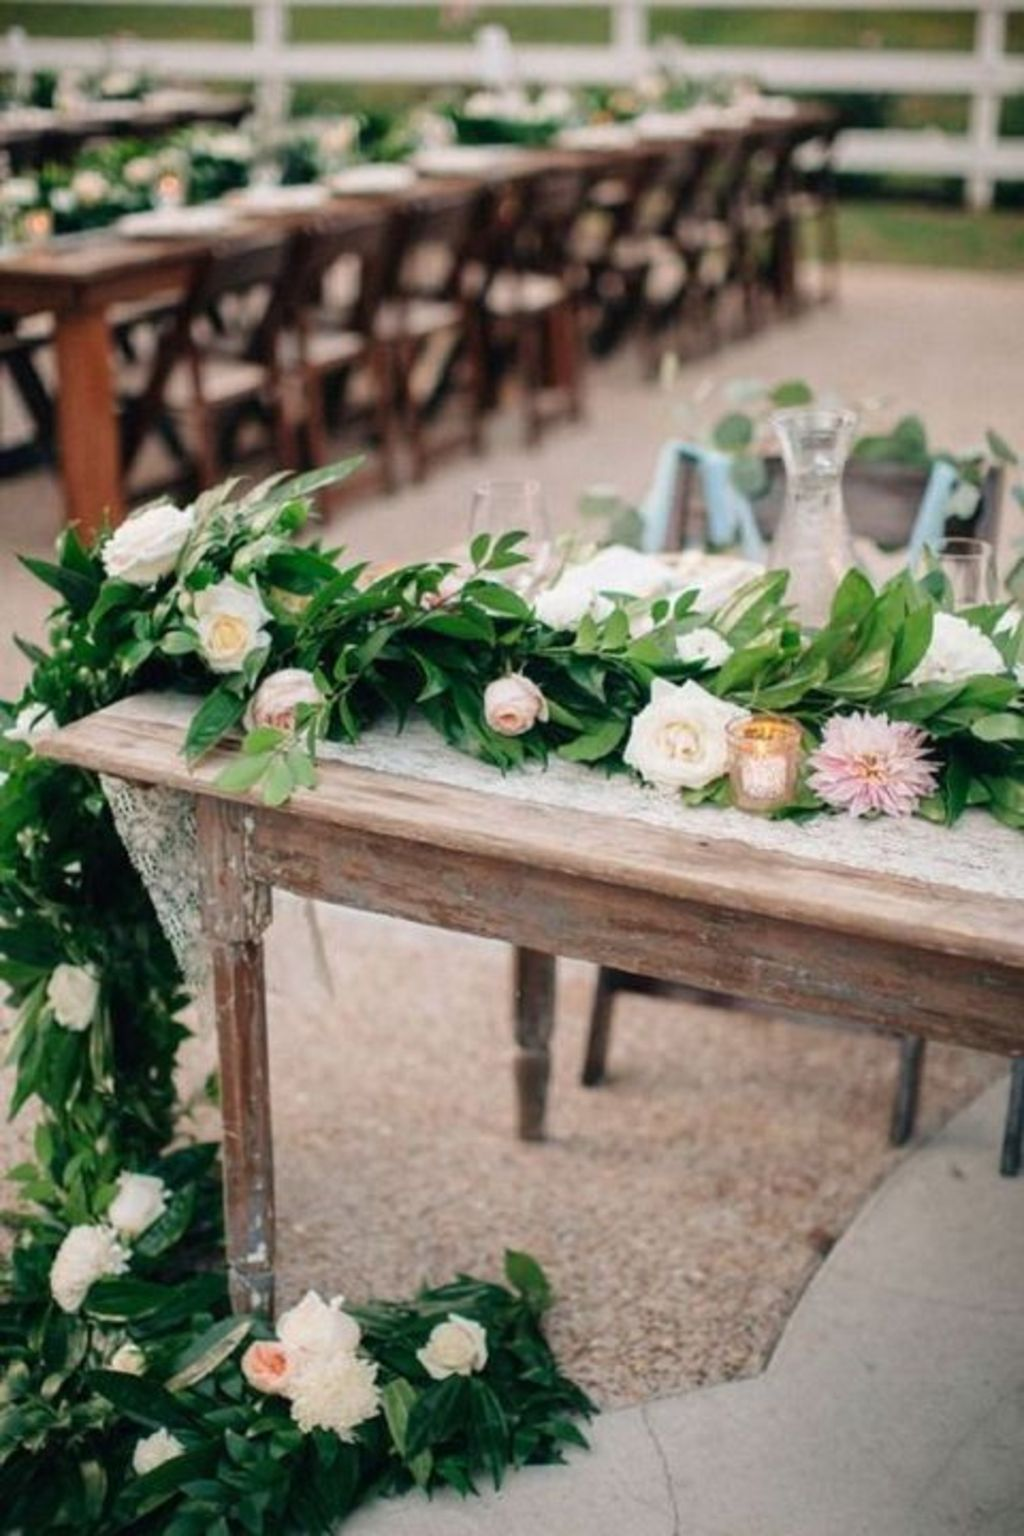 https://elonahome.com/wp-content/uploads/2019/01/Refreshing-spring-wedding-garland-with-green-and-ivory-color-theme-decoration-over-the-walls-wedding-arch-and-tables-Part-3.jpg